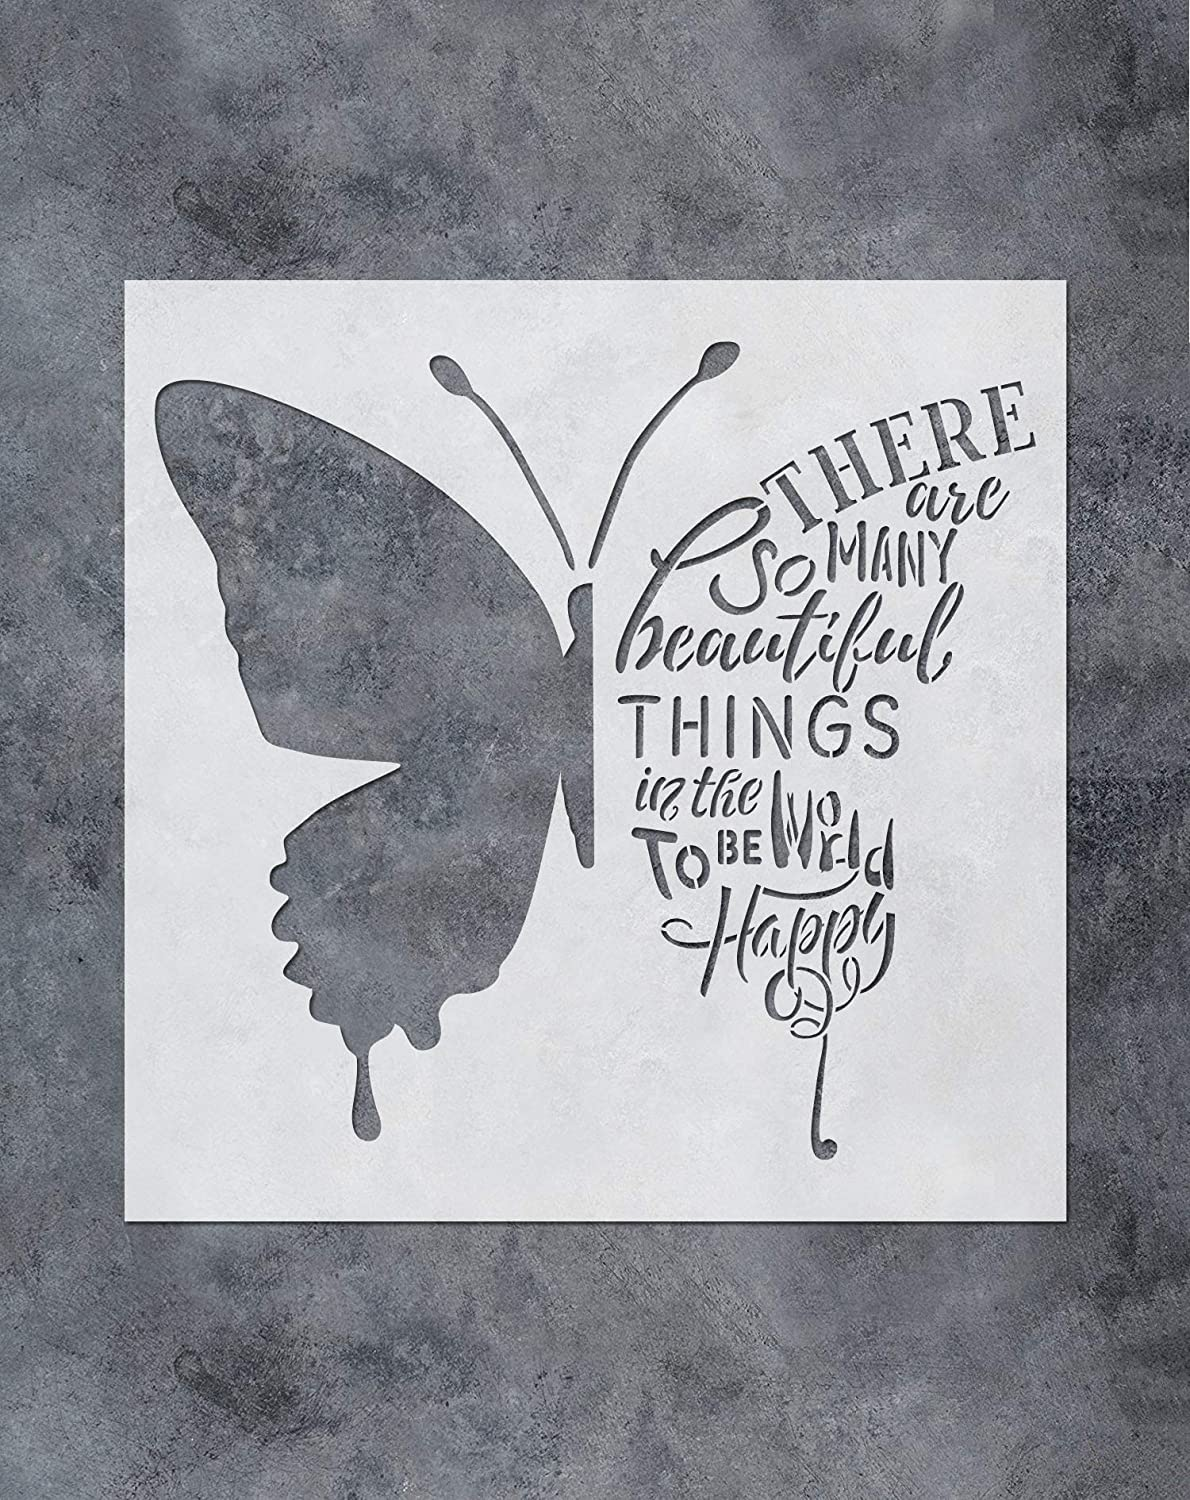 Amazon Com Gss Designs Butterfly Stencil Reusable Diy Wall Art Painting Stencil 12x12inch Wording Words And Quote Ideas For Walls Floors Fabrics Wood Sl 084 Kitchen Dining